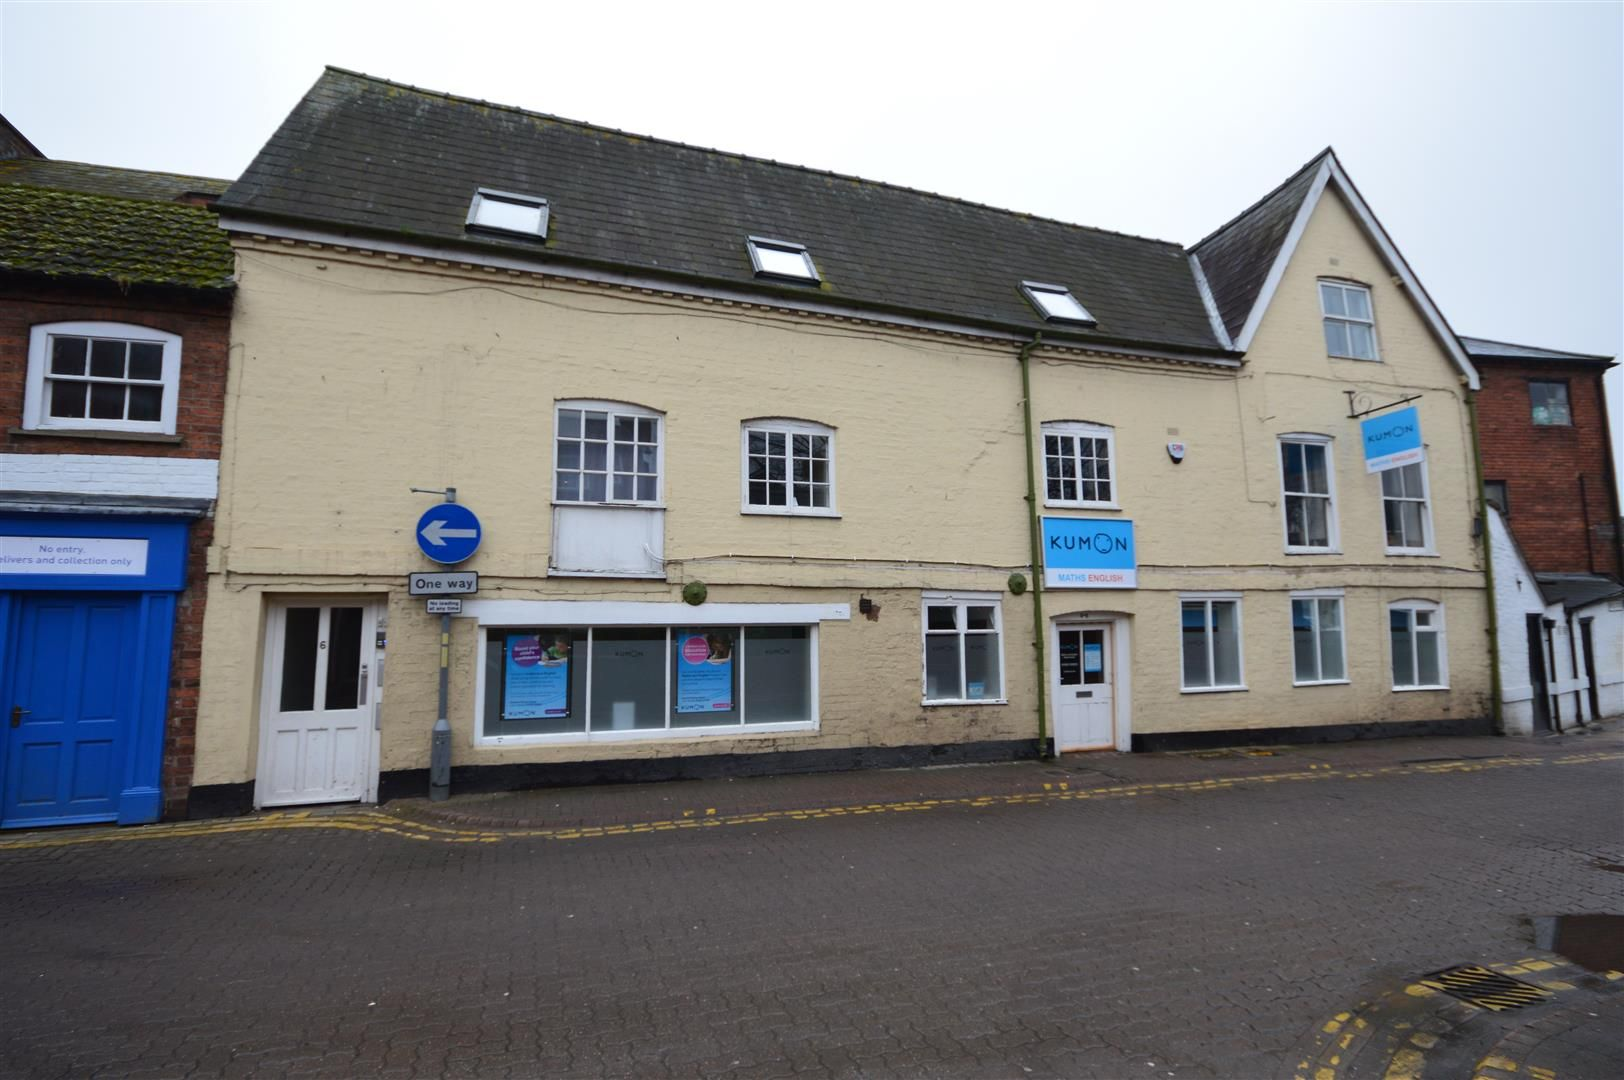 2 bed residential-development for sale in Hereford, HR4